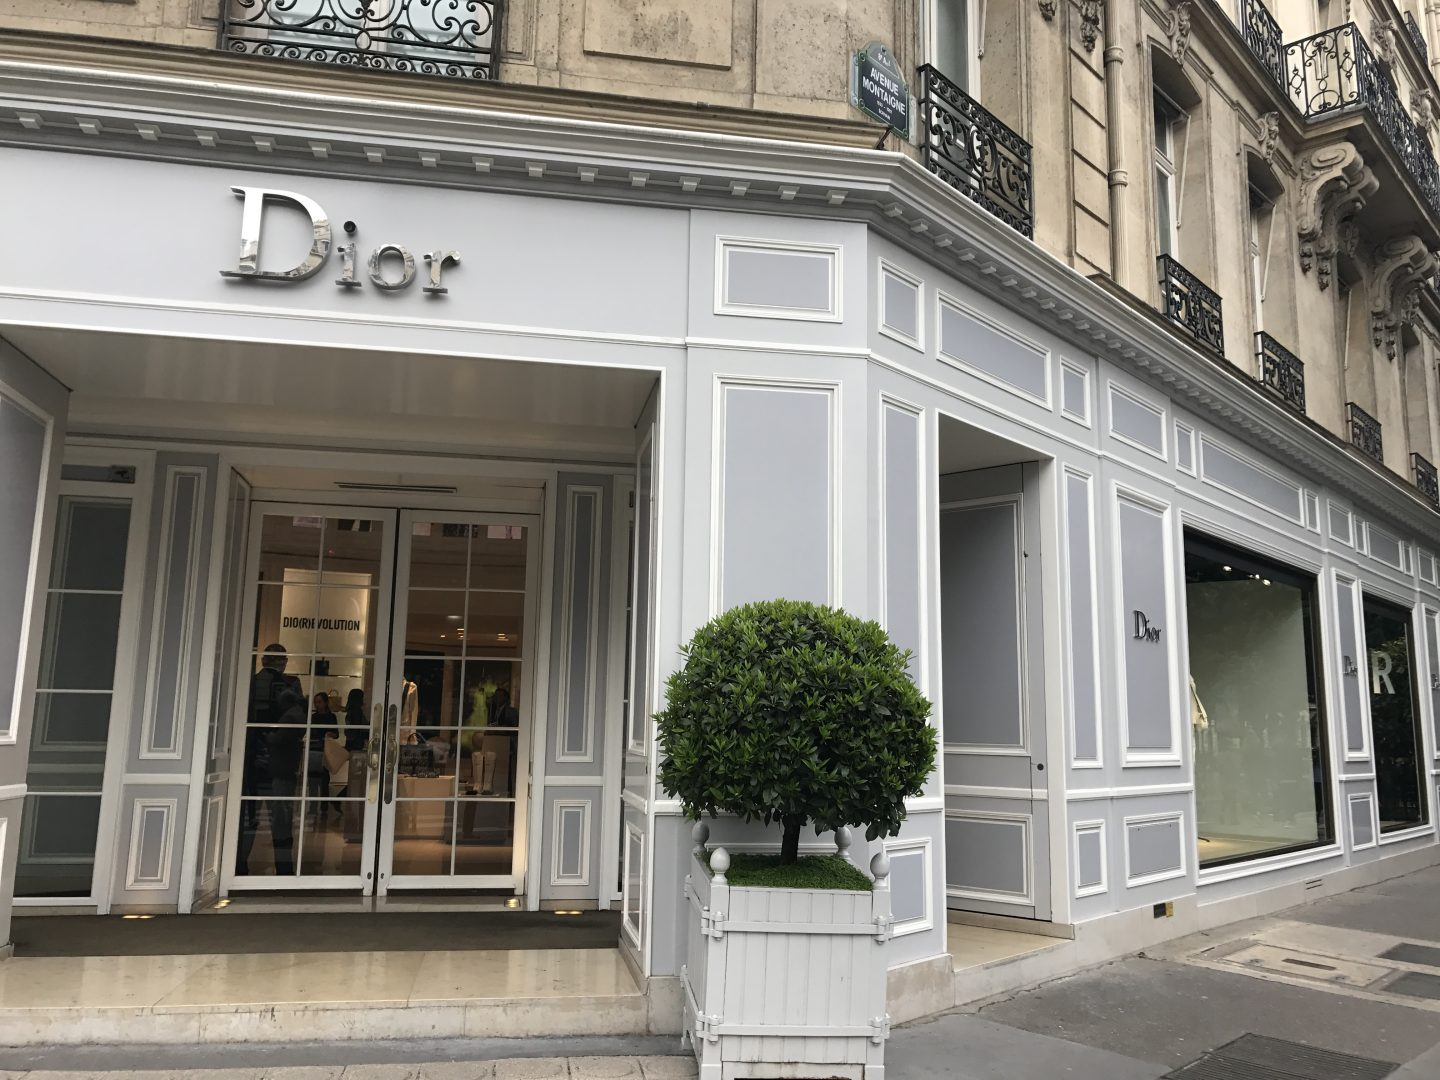 Dior Ave Montaigne